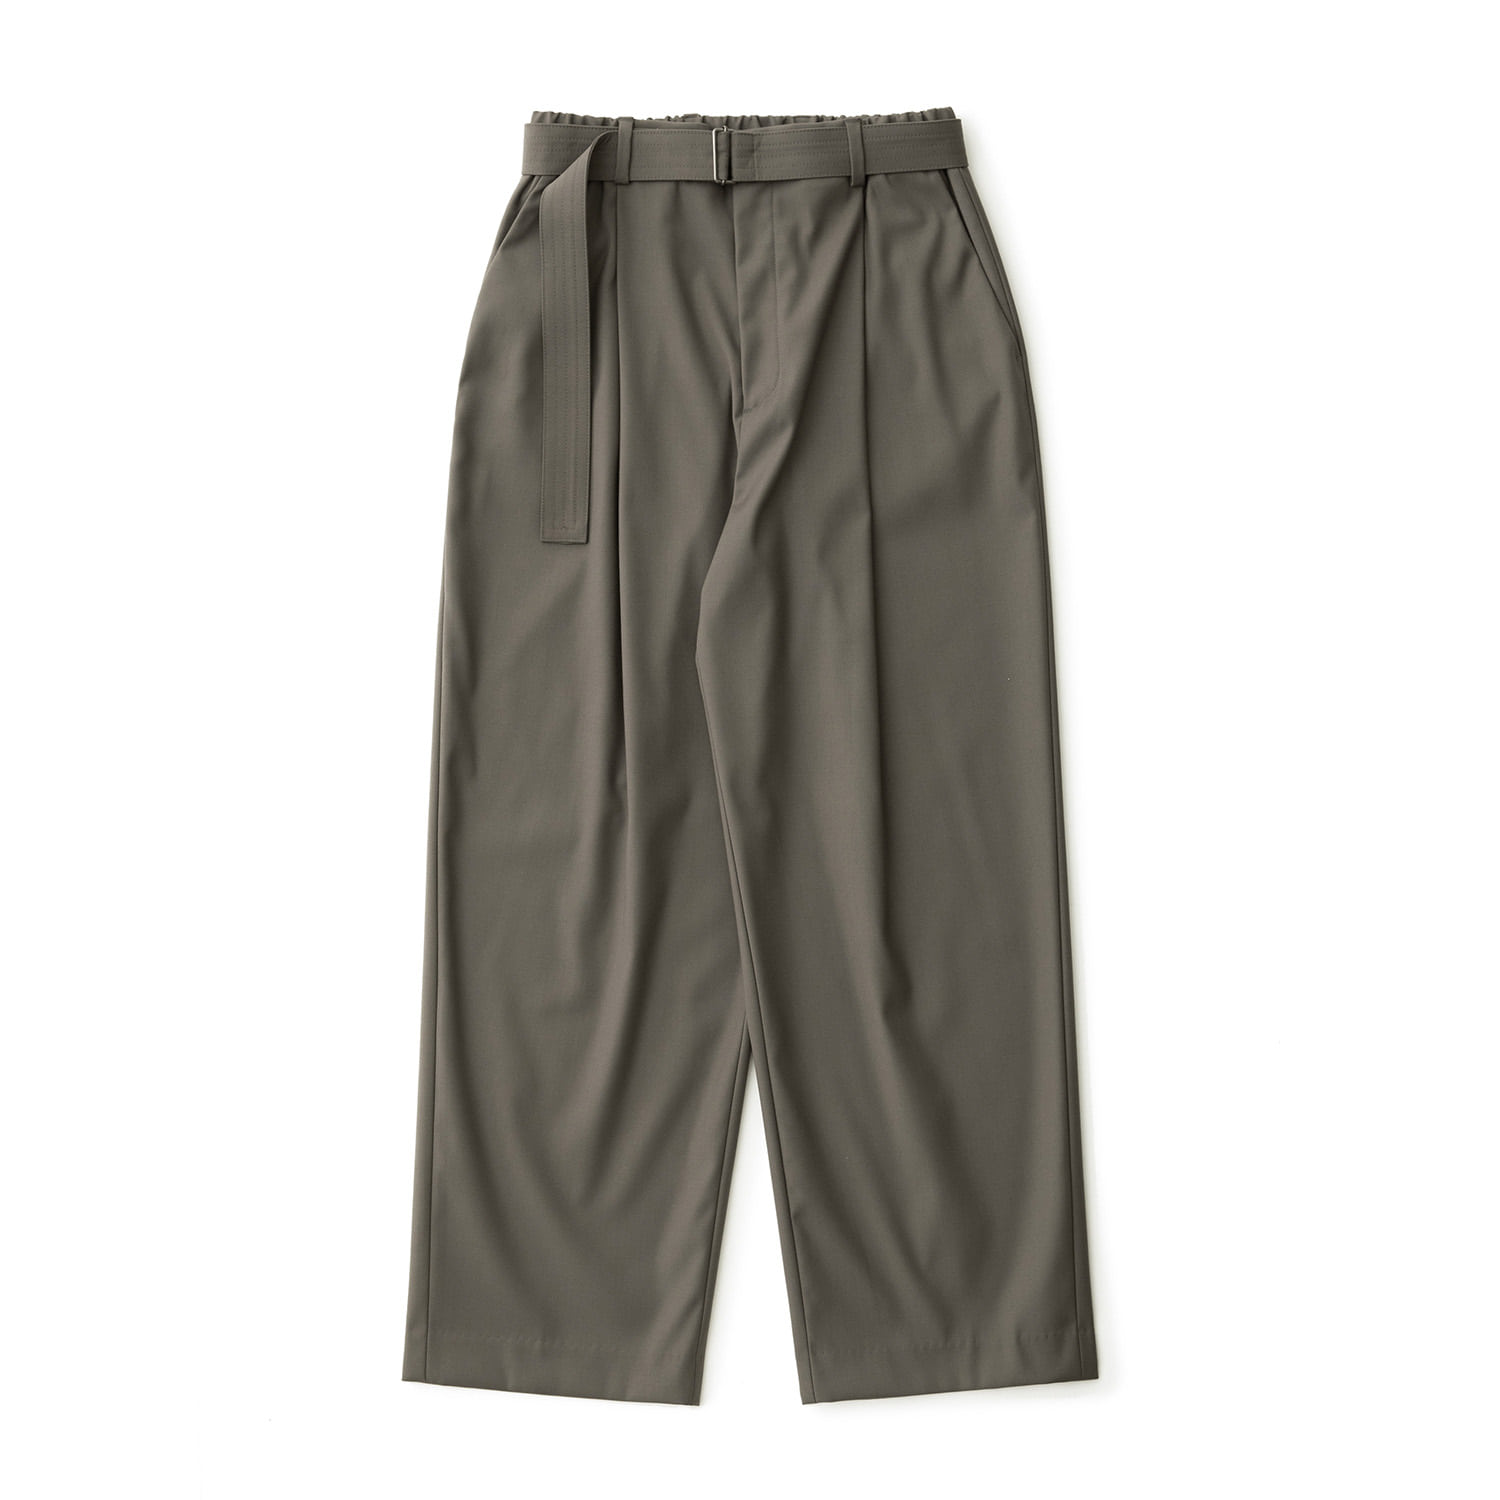 Calm Banded Pants (Mink)